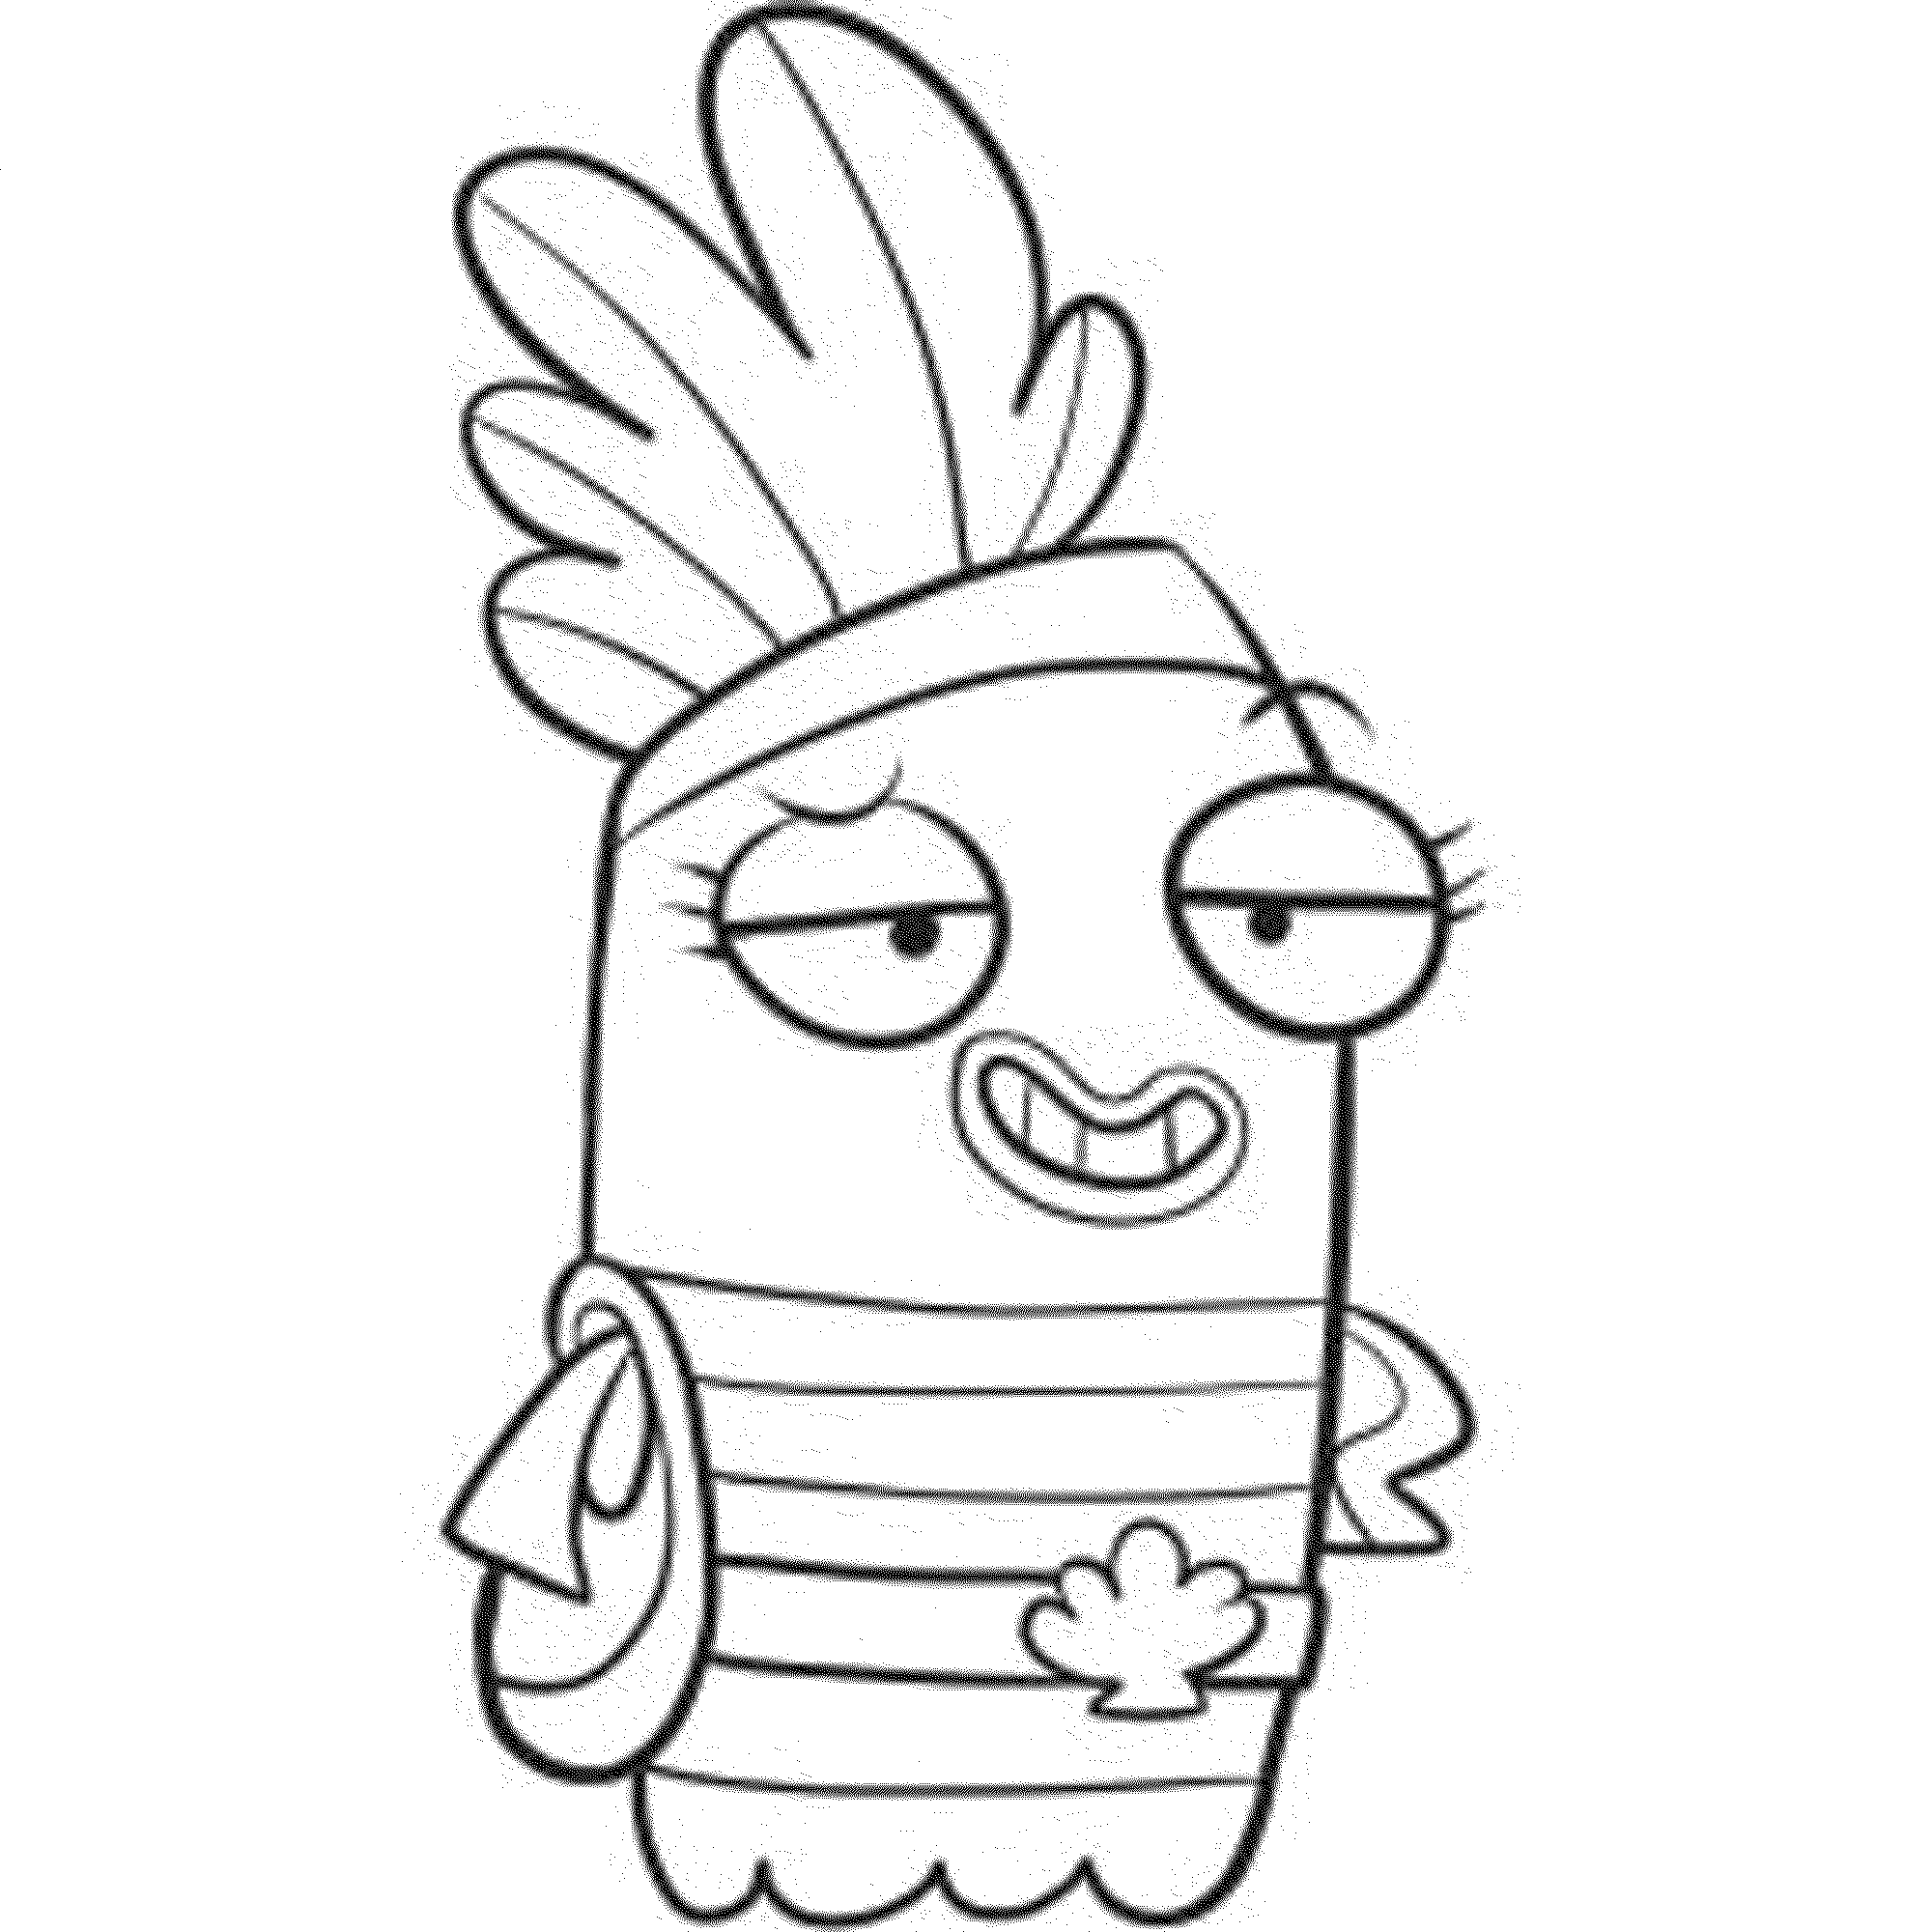 Fish Hooks Coloring Pages To Print Coloring Page